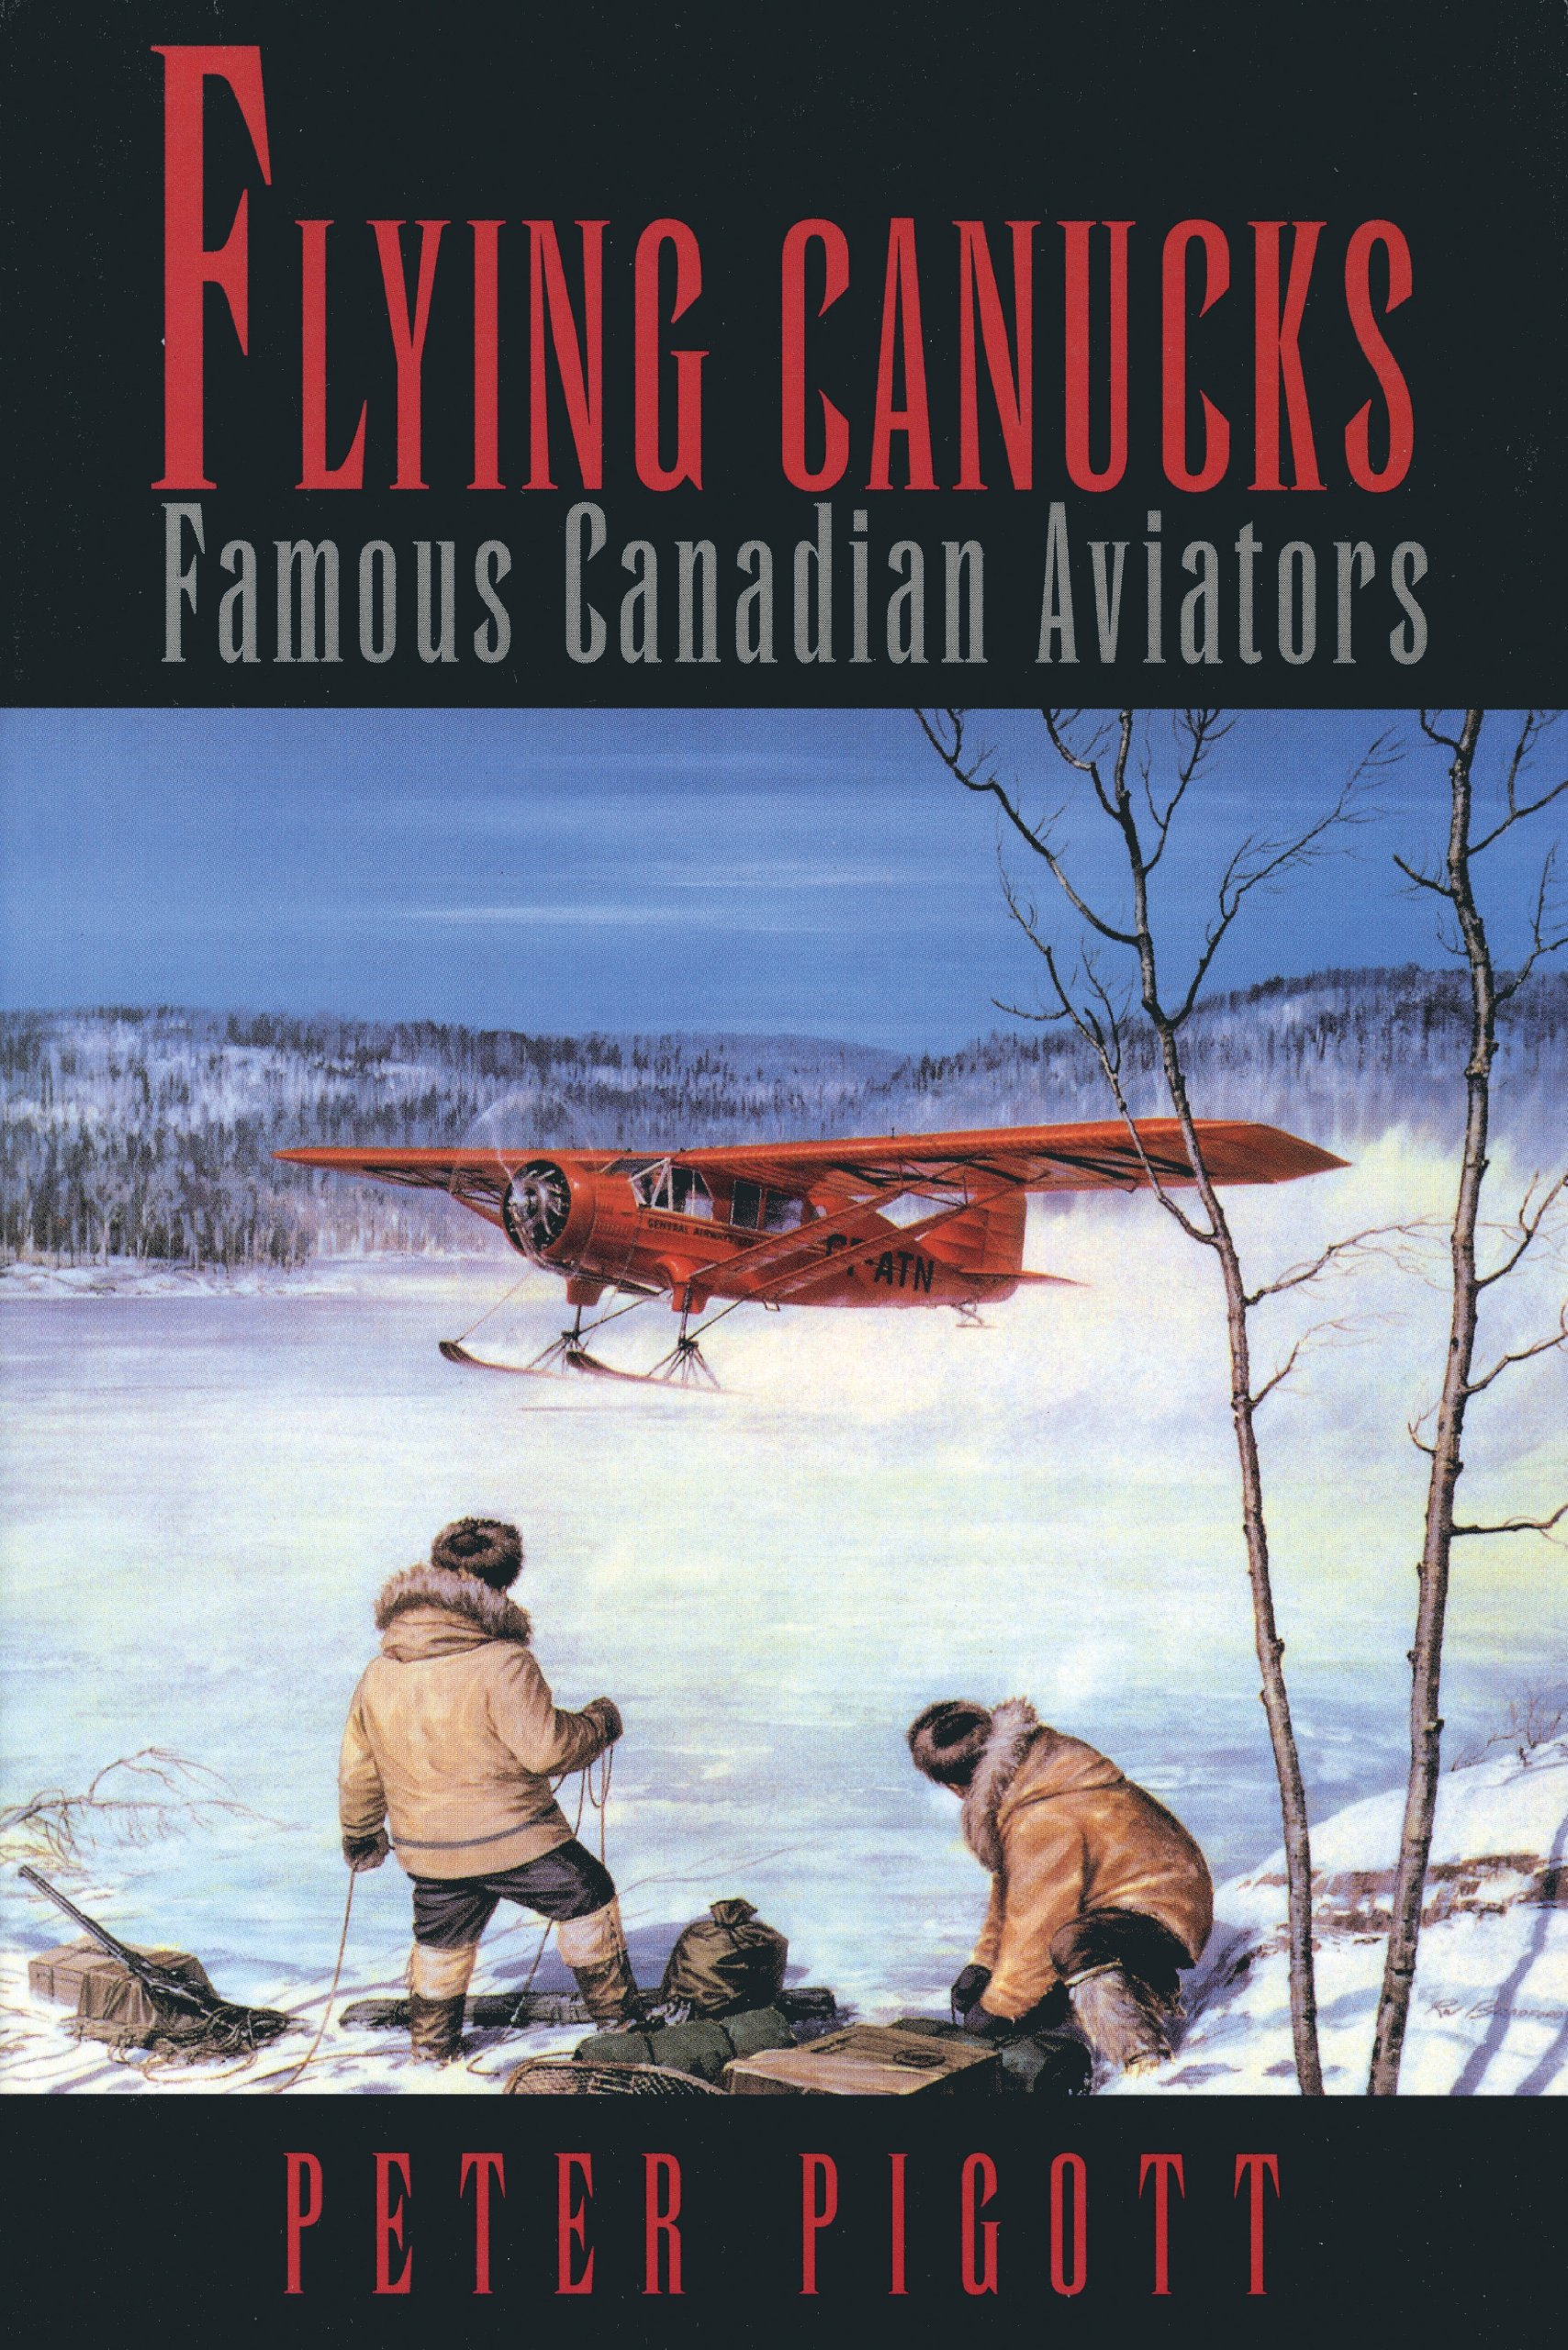 Flying Canucks: Fifty Canadian Aviators